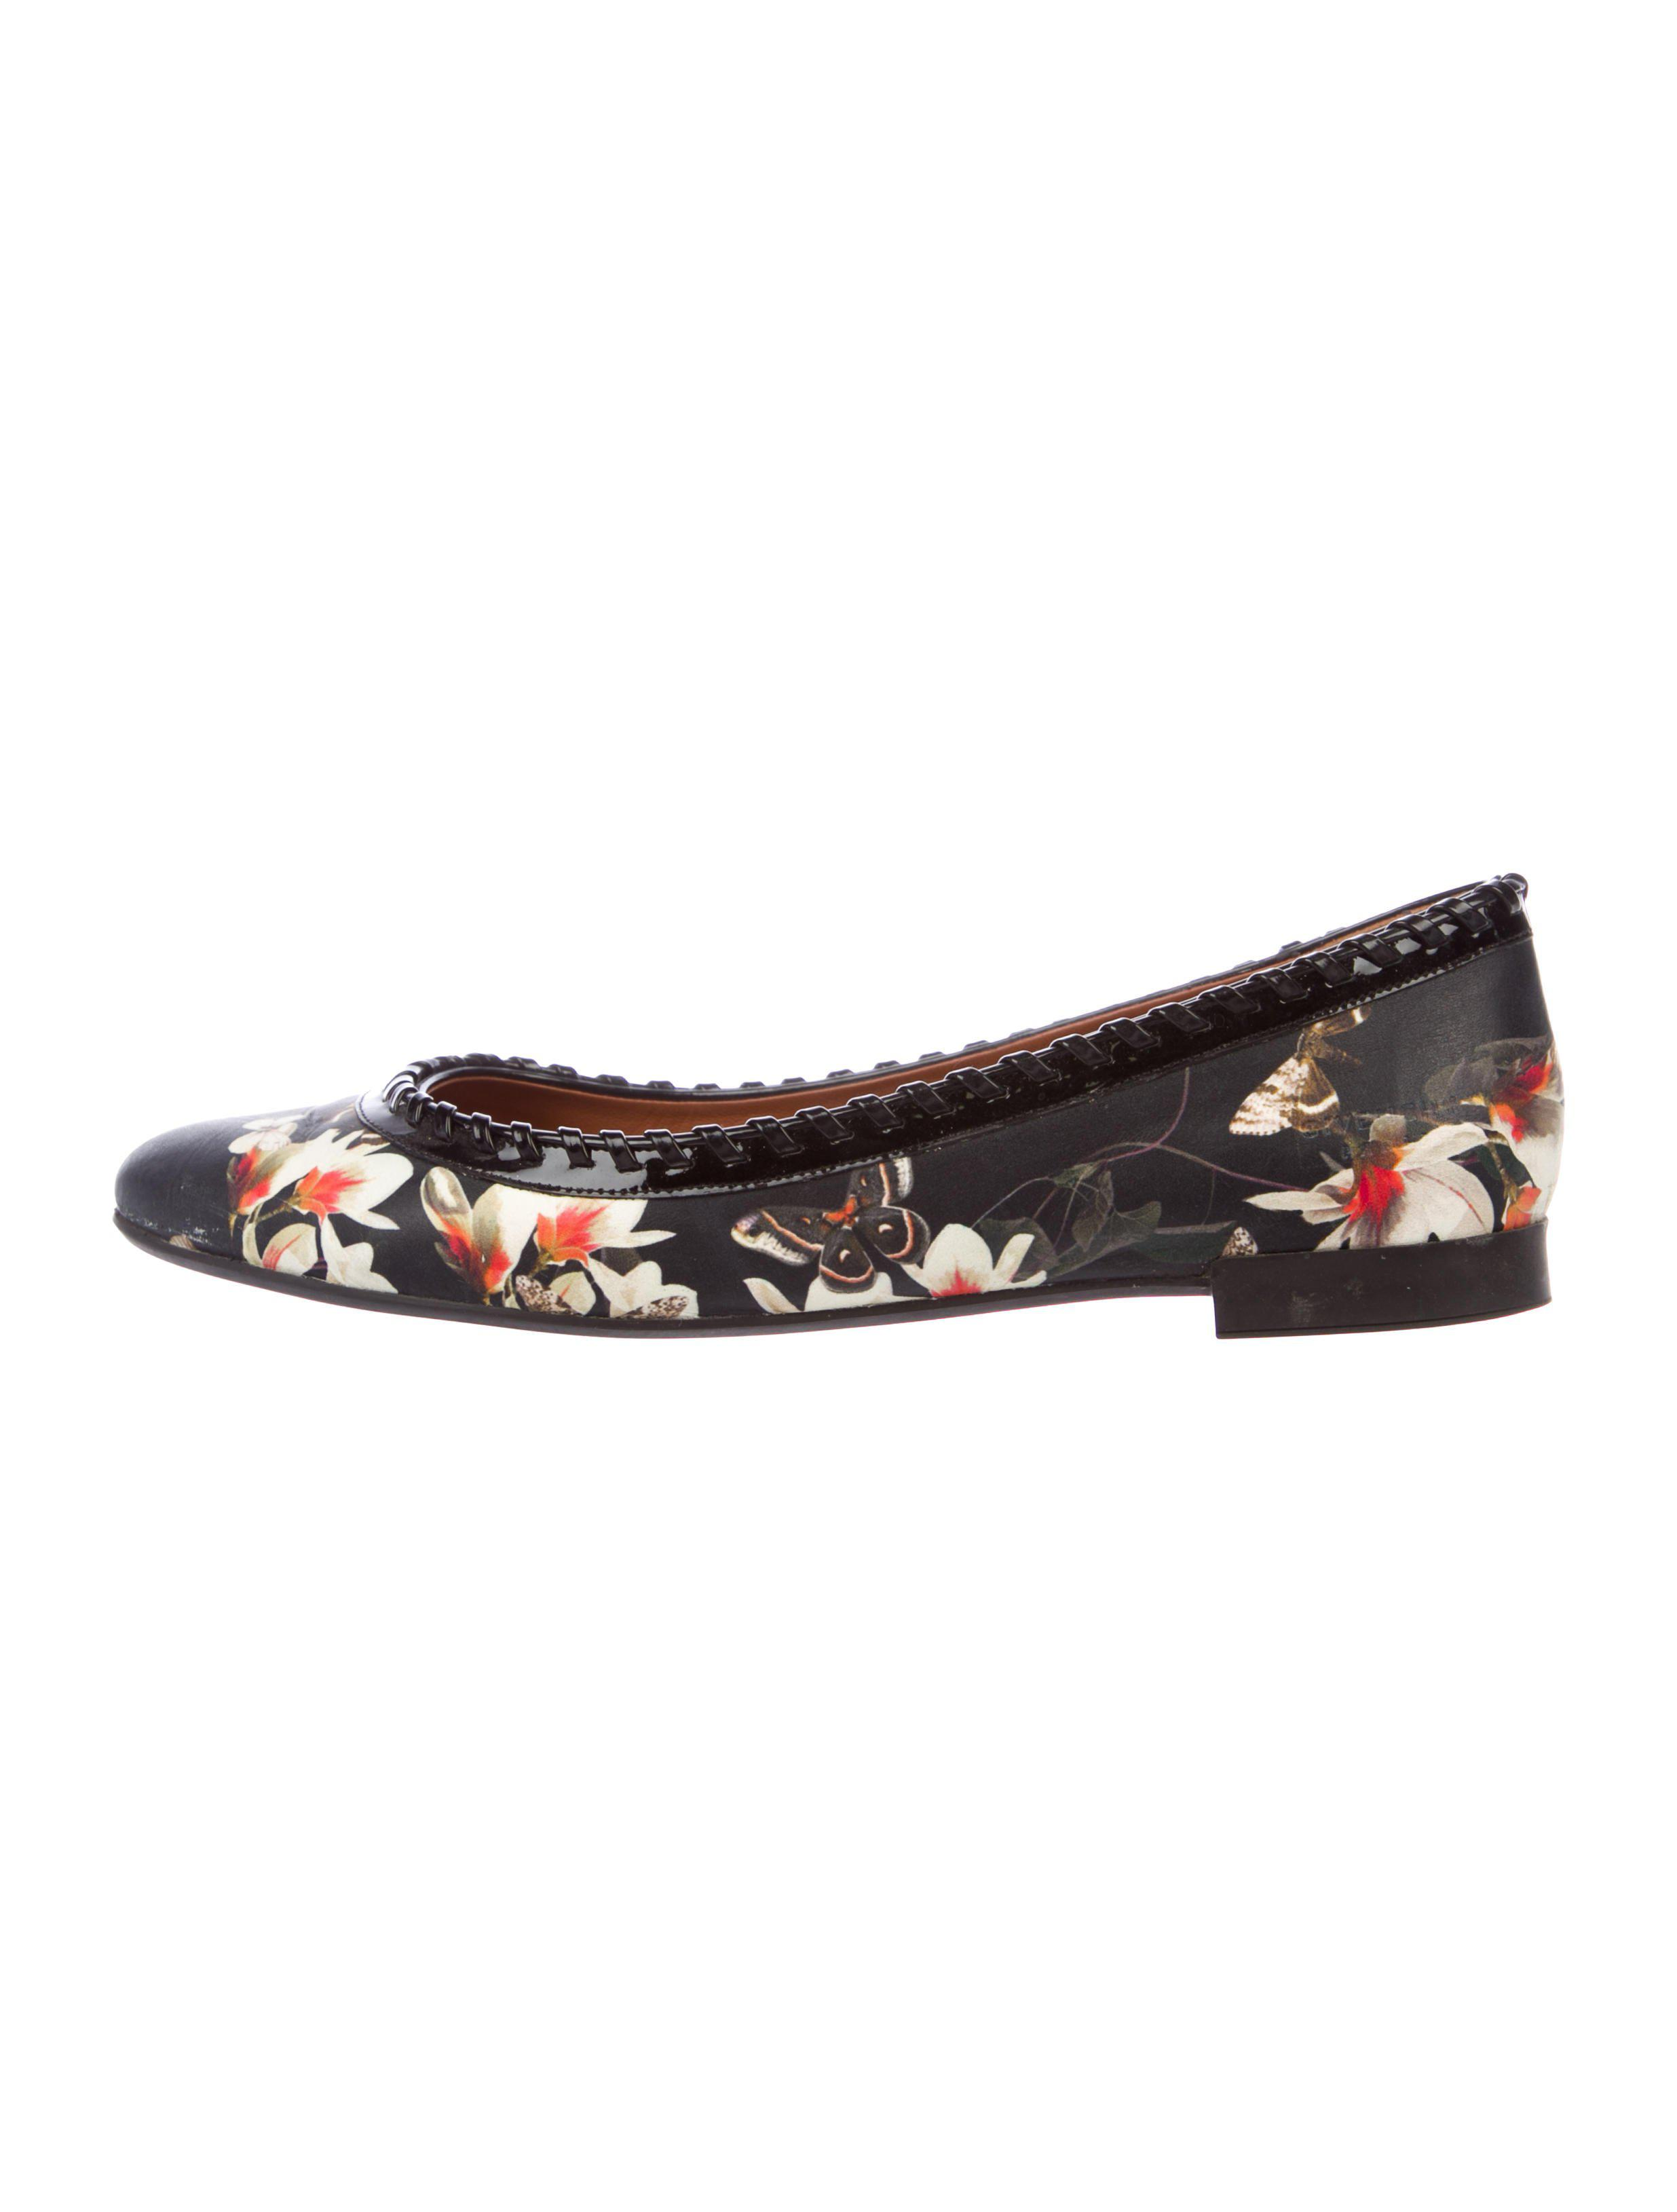 under $60 Givenchy Butterfly Magnolia Leather Flats clearance best store to get 7E1V1